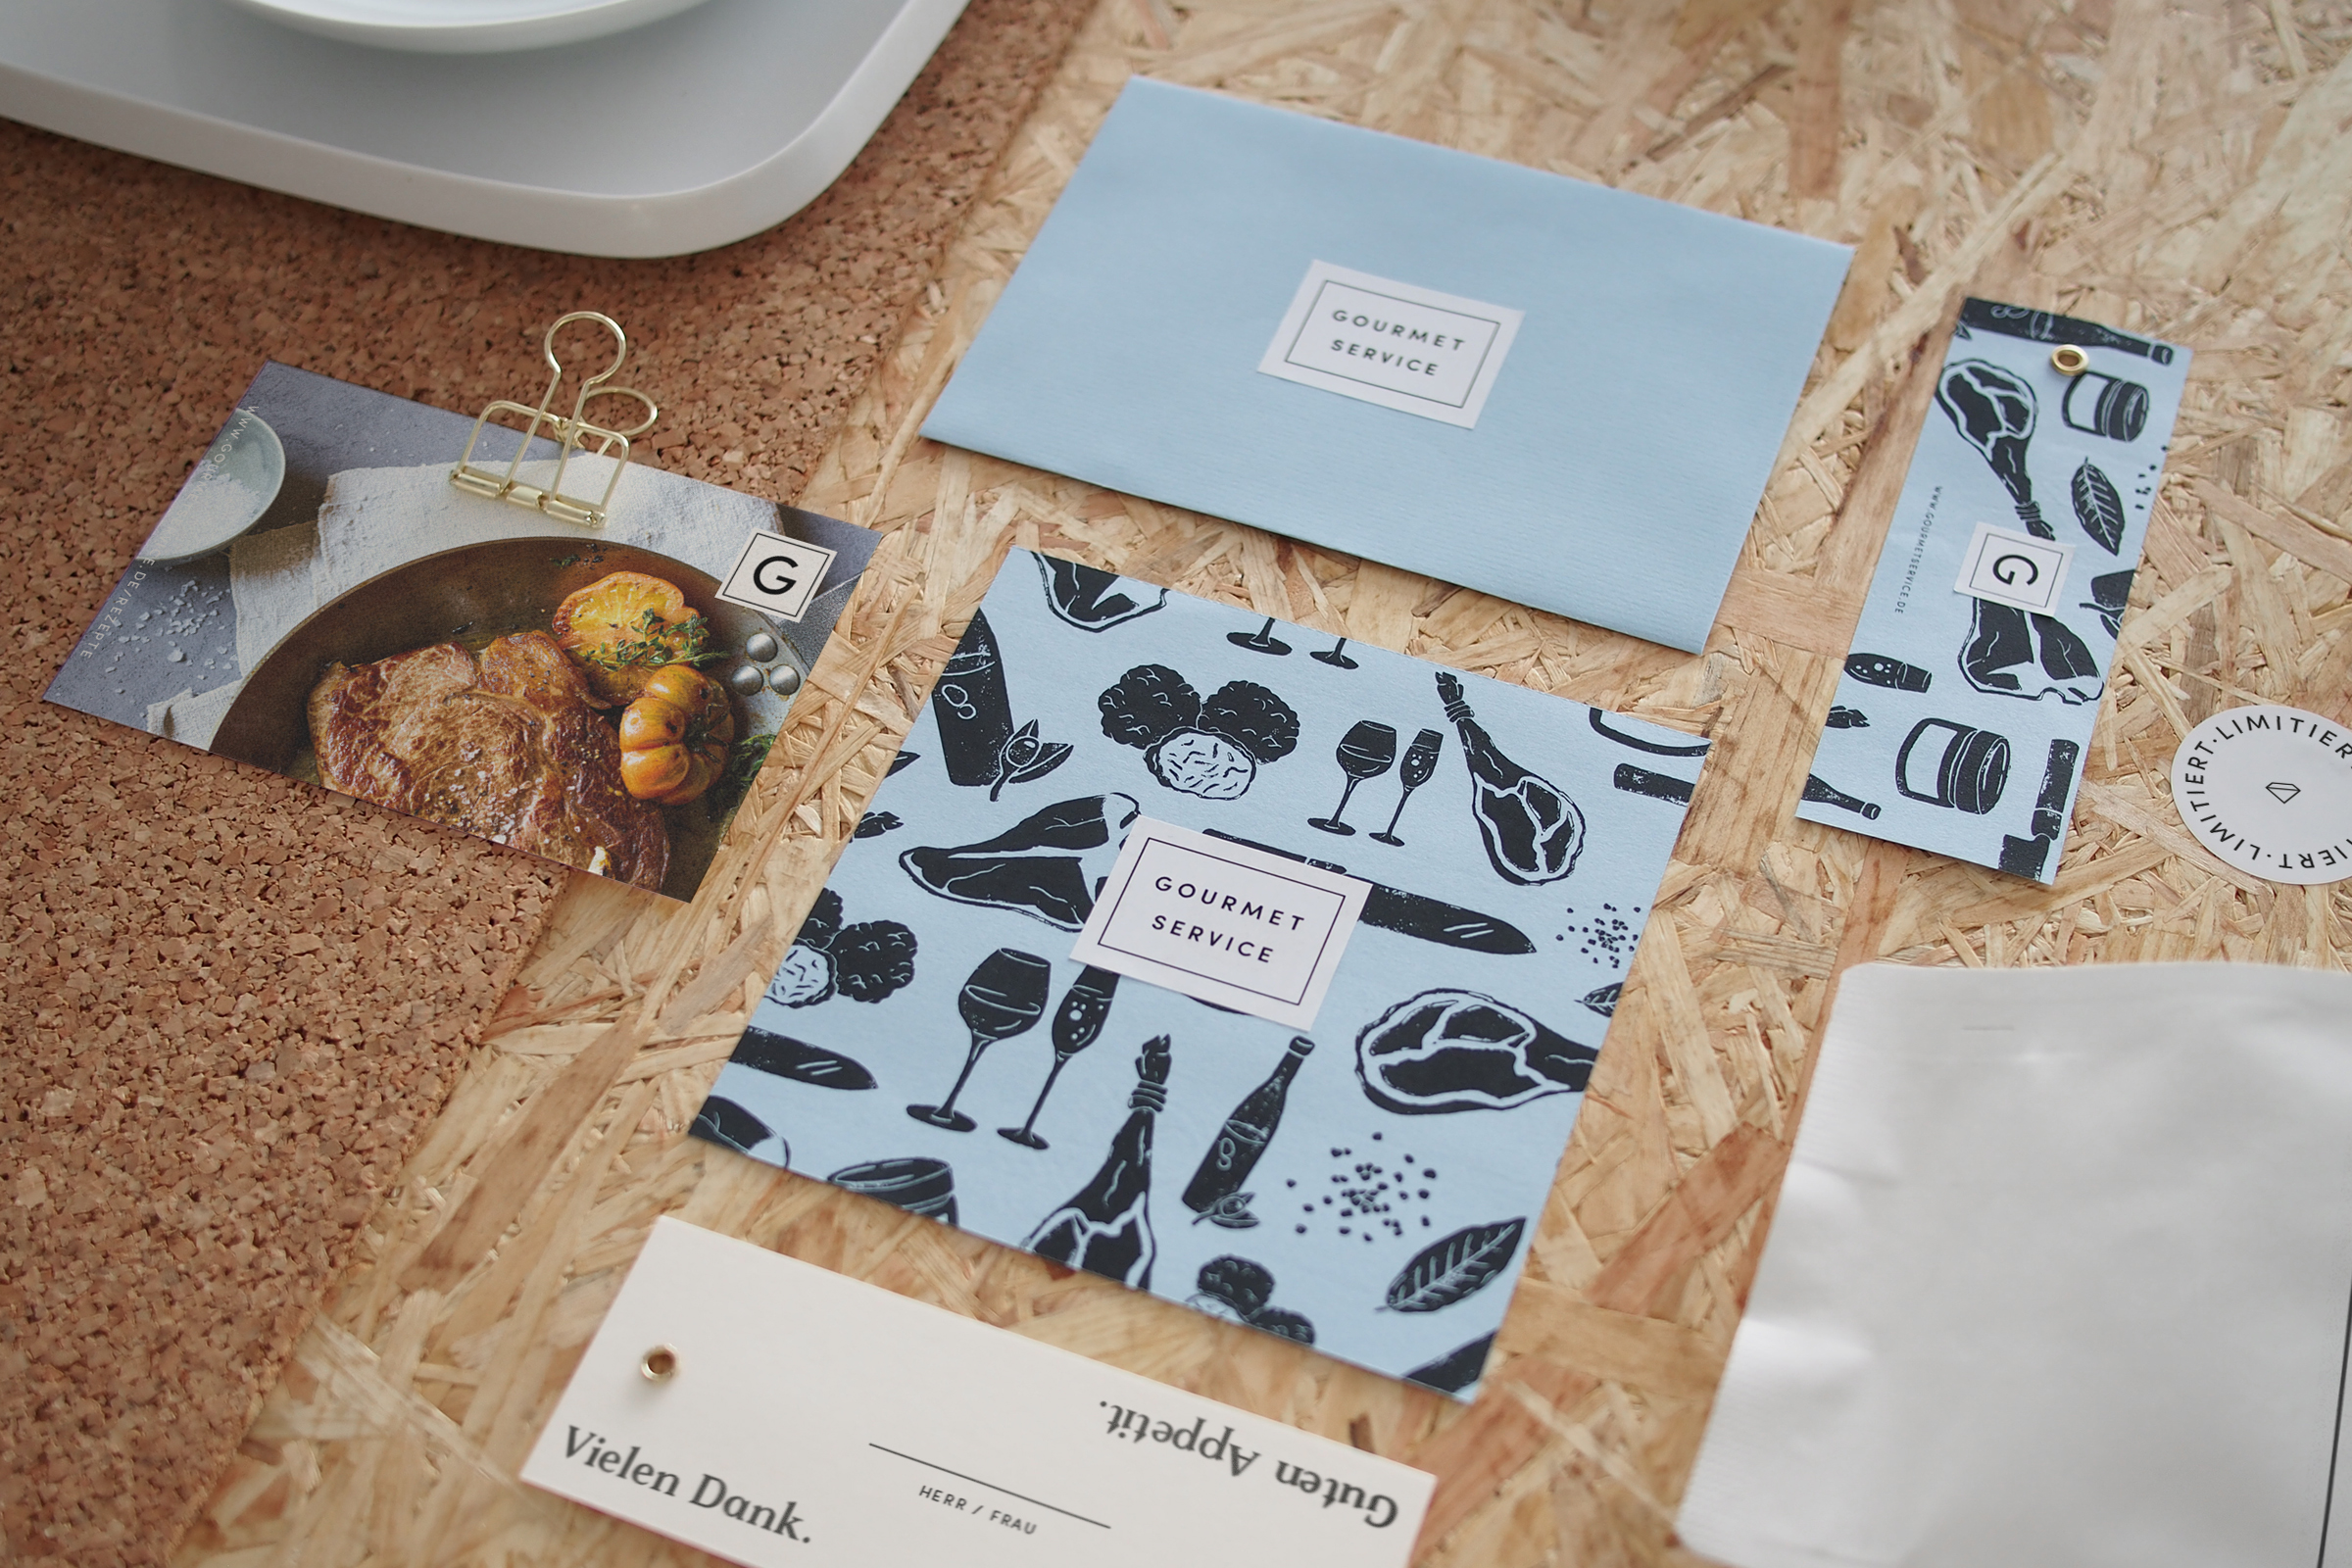 Corporate Identity, Corporate Design, Supermarkt, Lebensmittel, Gourmet, Click and collect